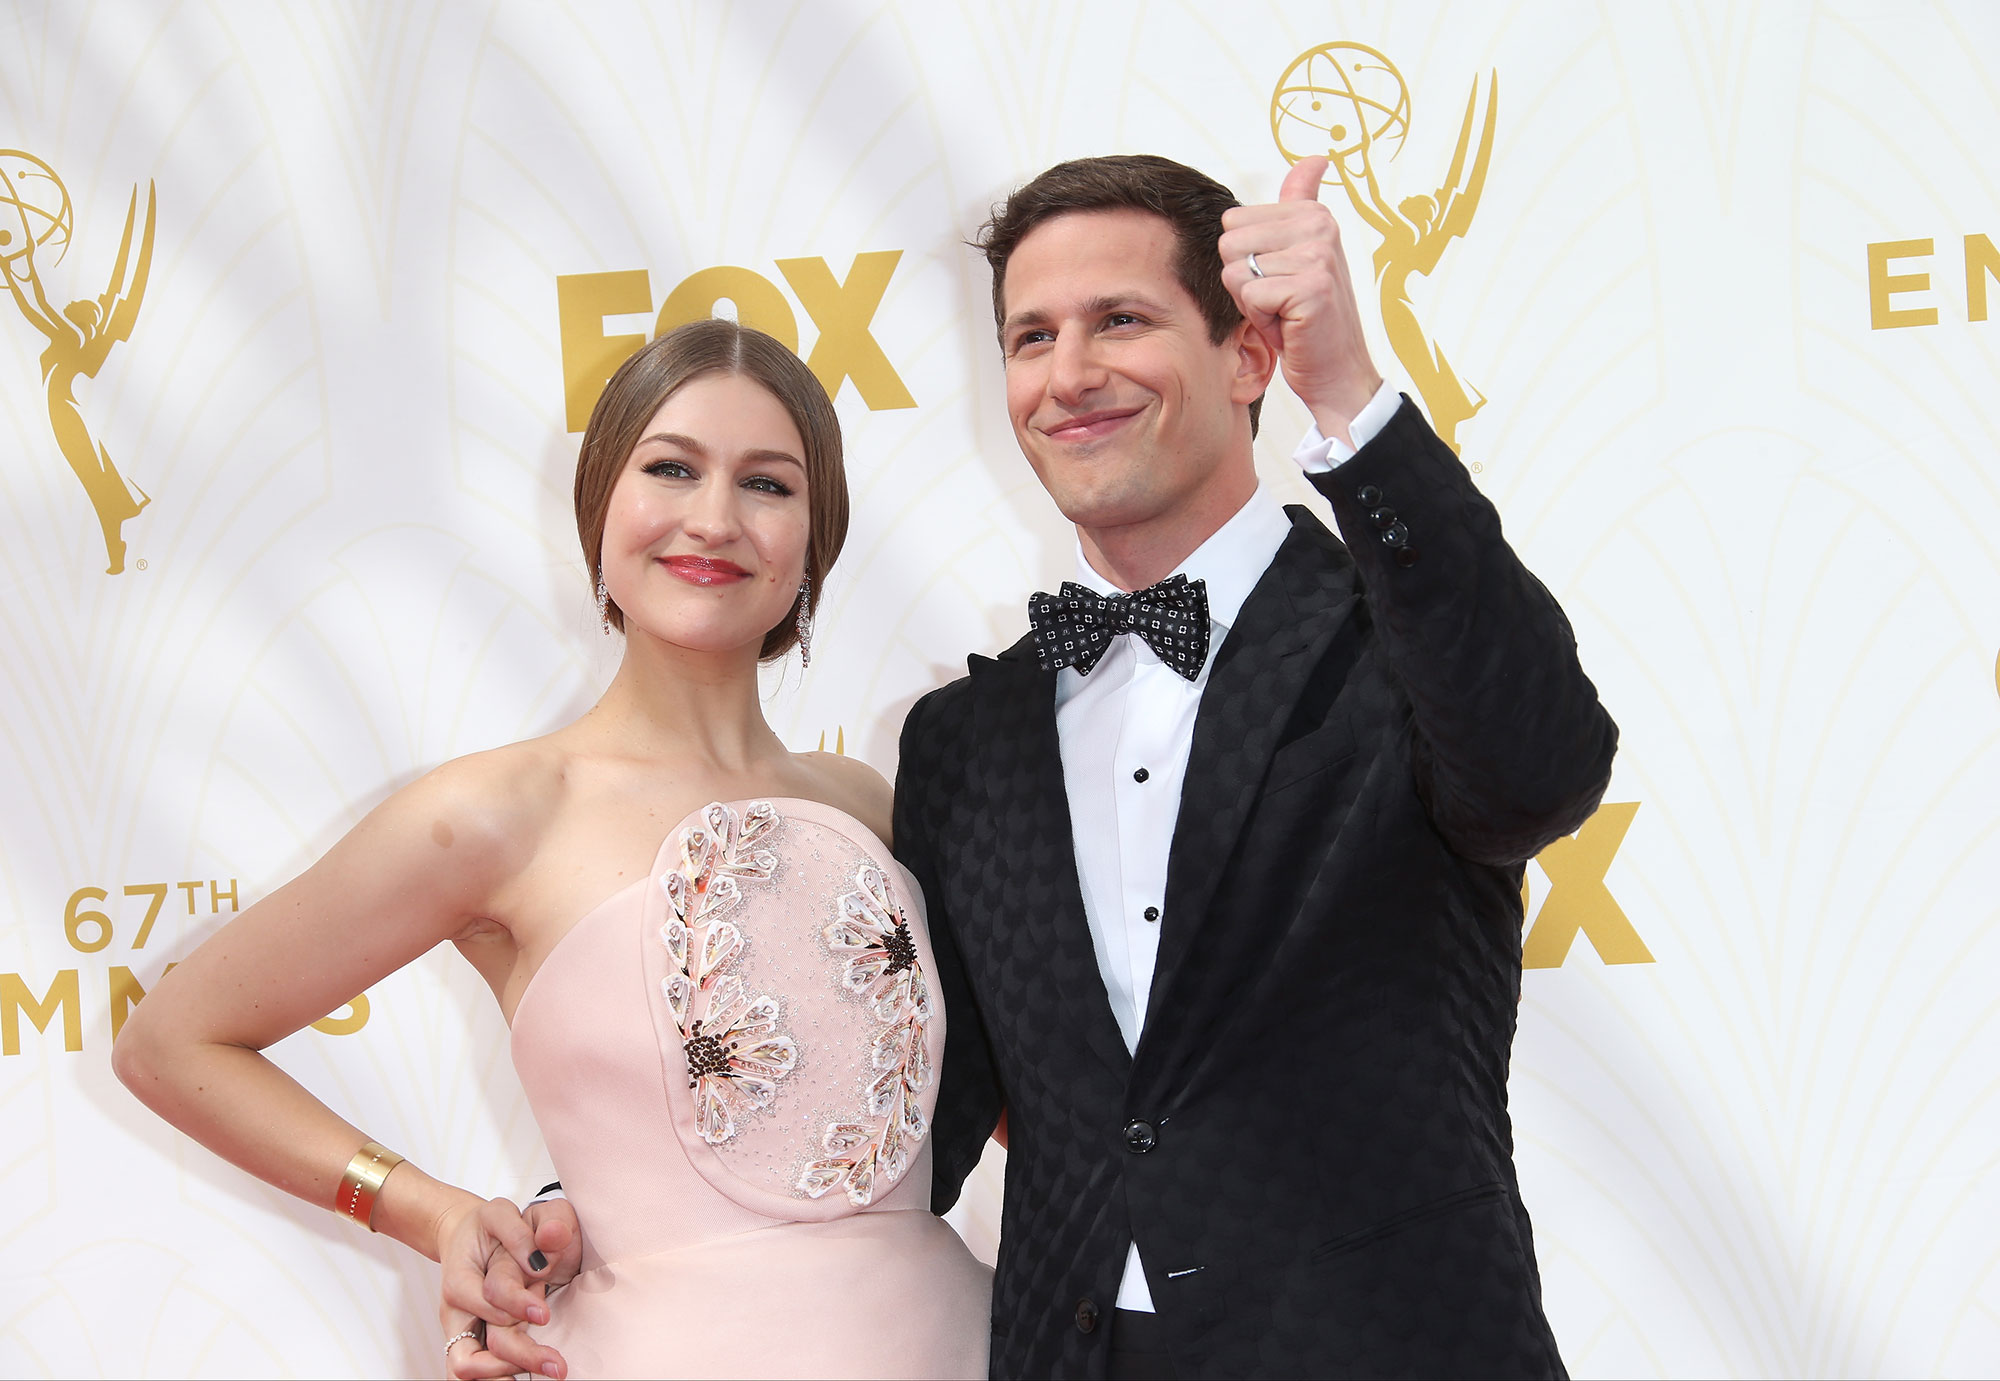 Andy Samberg Joanna Newsom - The Brooklyn Nine-Nine star's wife gave birth to the couple's daughter after they kept her pregnancy a secret, with a rep for Samberg exclusively confirming the happy news to Us in August 2017.